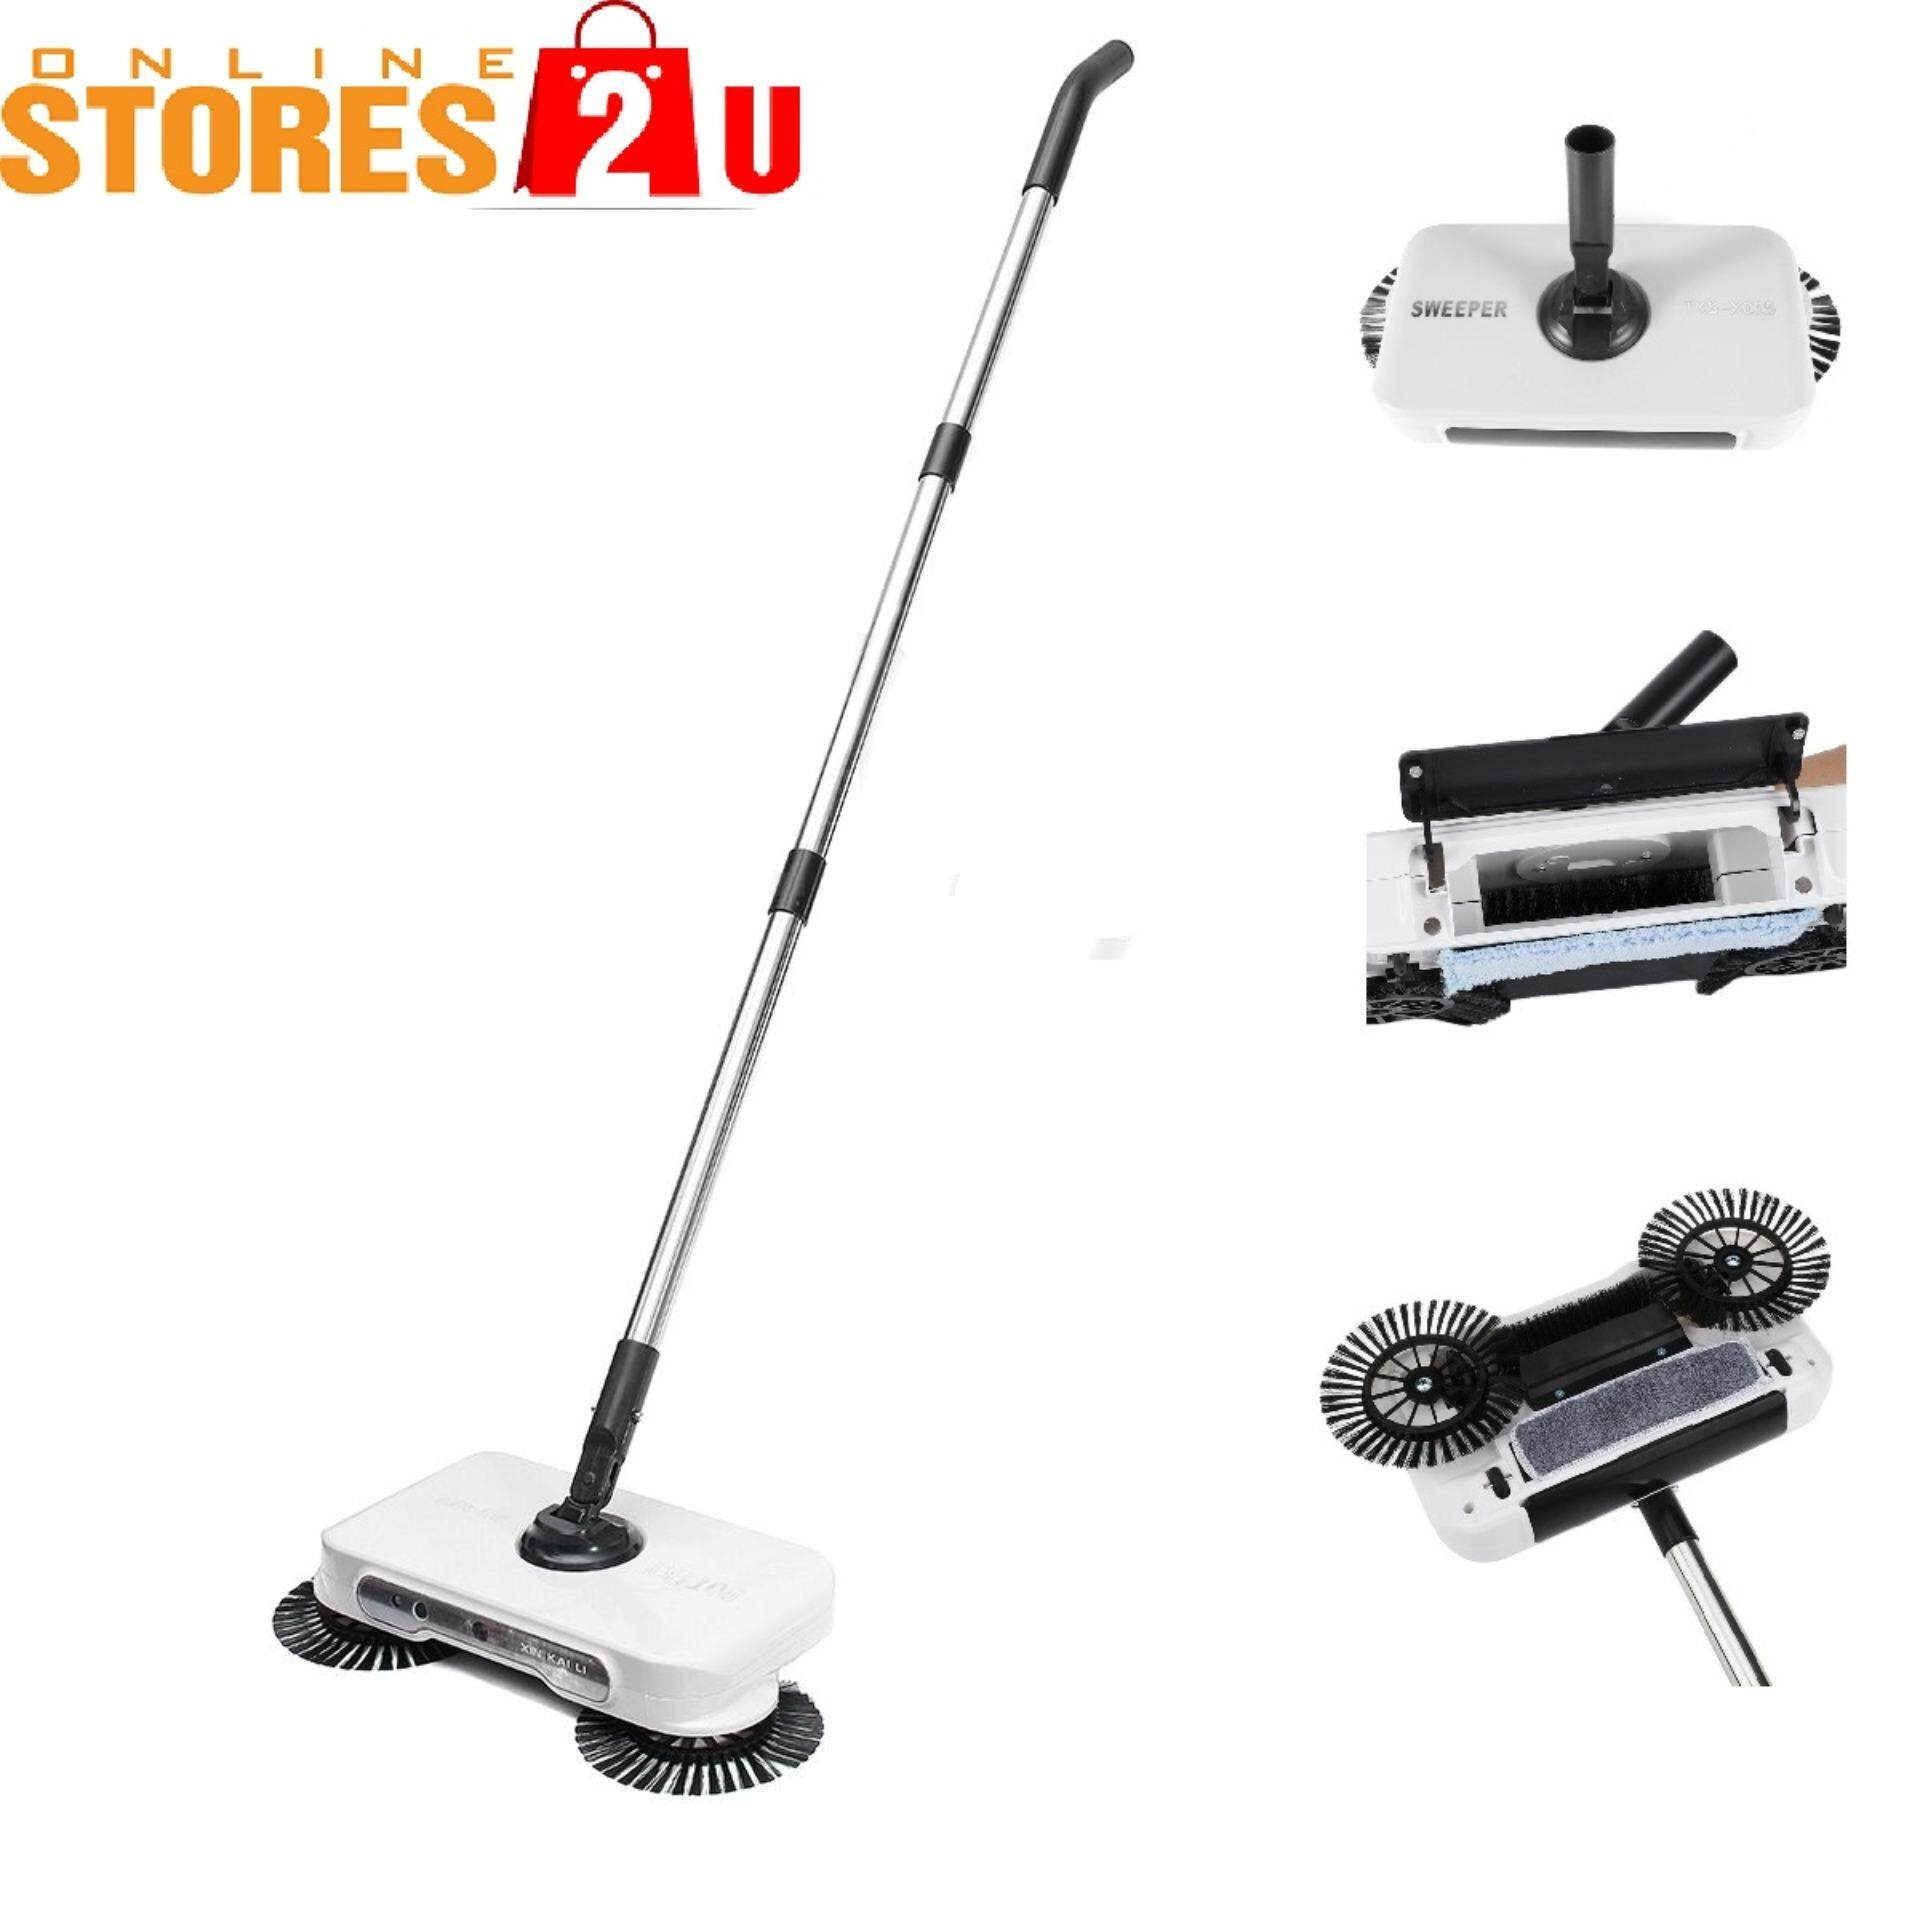 [Stores2u] 3in1 Automatic Smart Sweeper Dustpan Hand Push Magic Sweeping 3 in 1 Broom, Dustpan and Trash Bin For Cleaning Floor